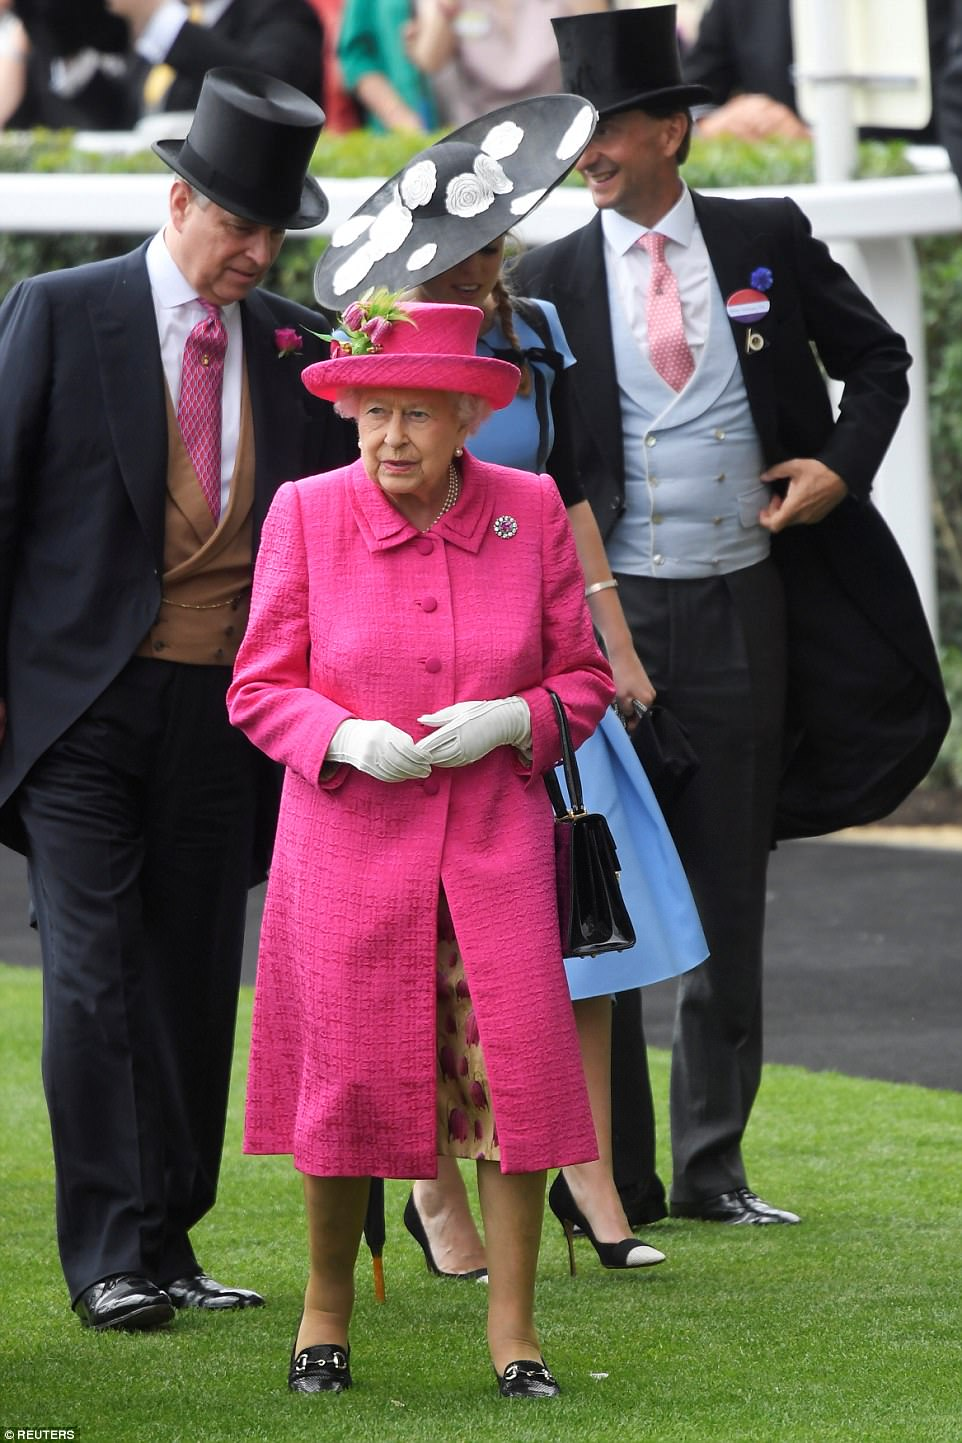 Punters were betting on the Queen choosing pink for Ladies Day and weren't left disappointed